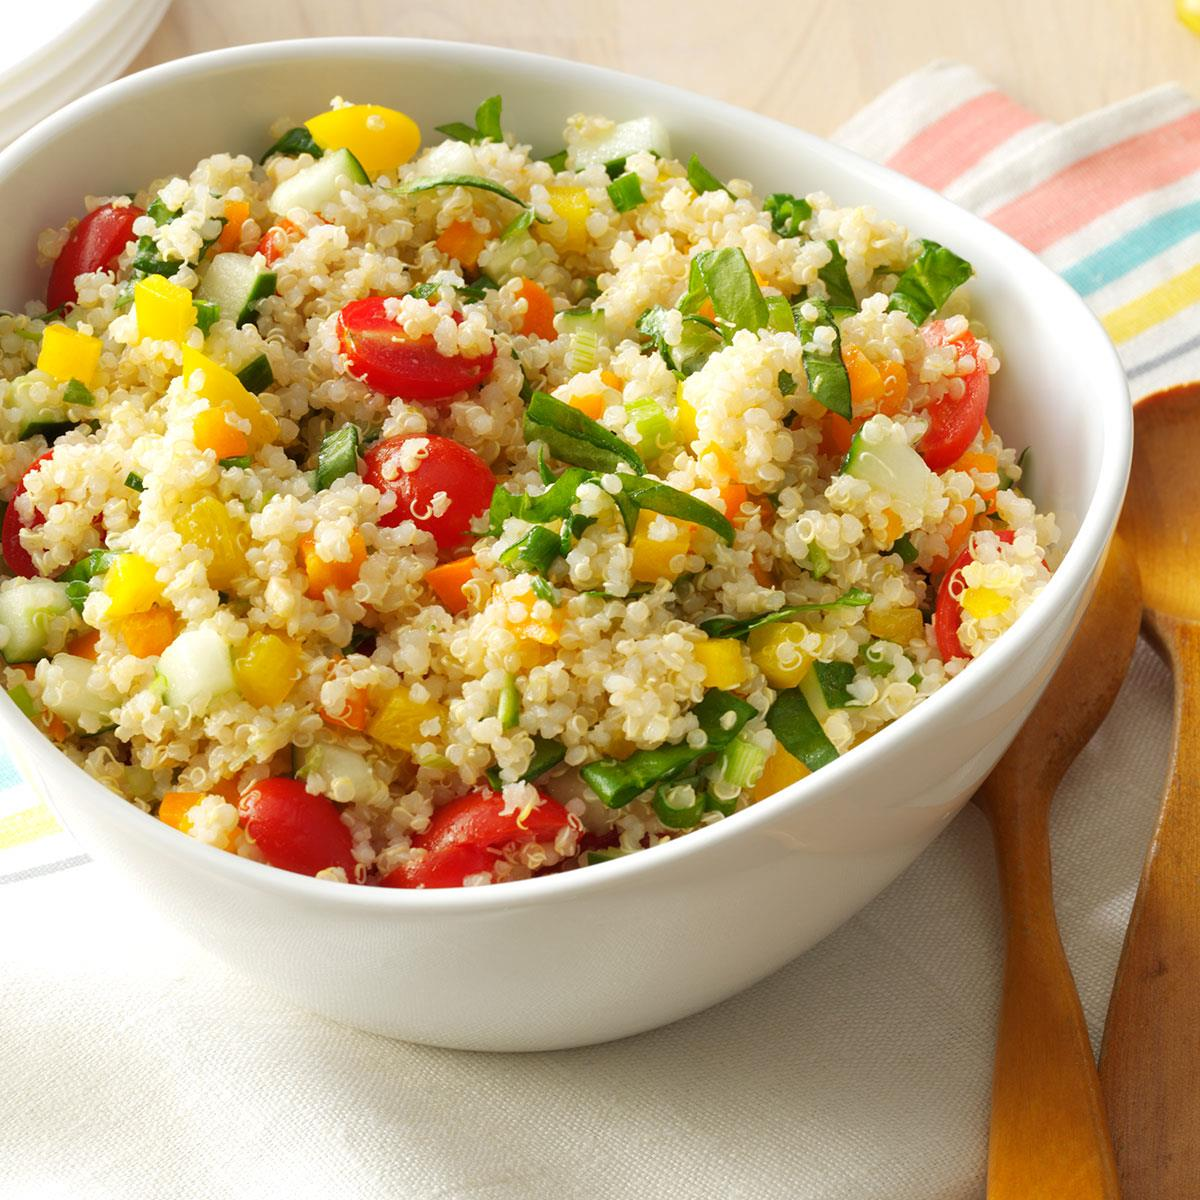 colorful-quinoa-salad_exps174640_sd143204c12_03_2b_rms